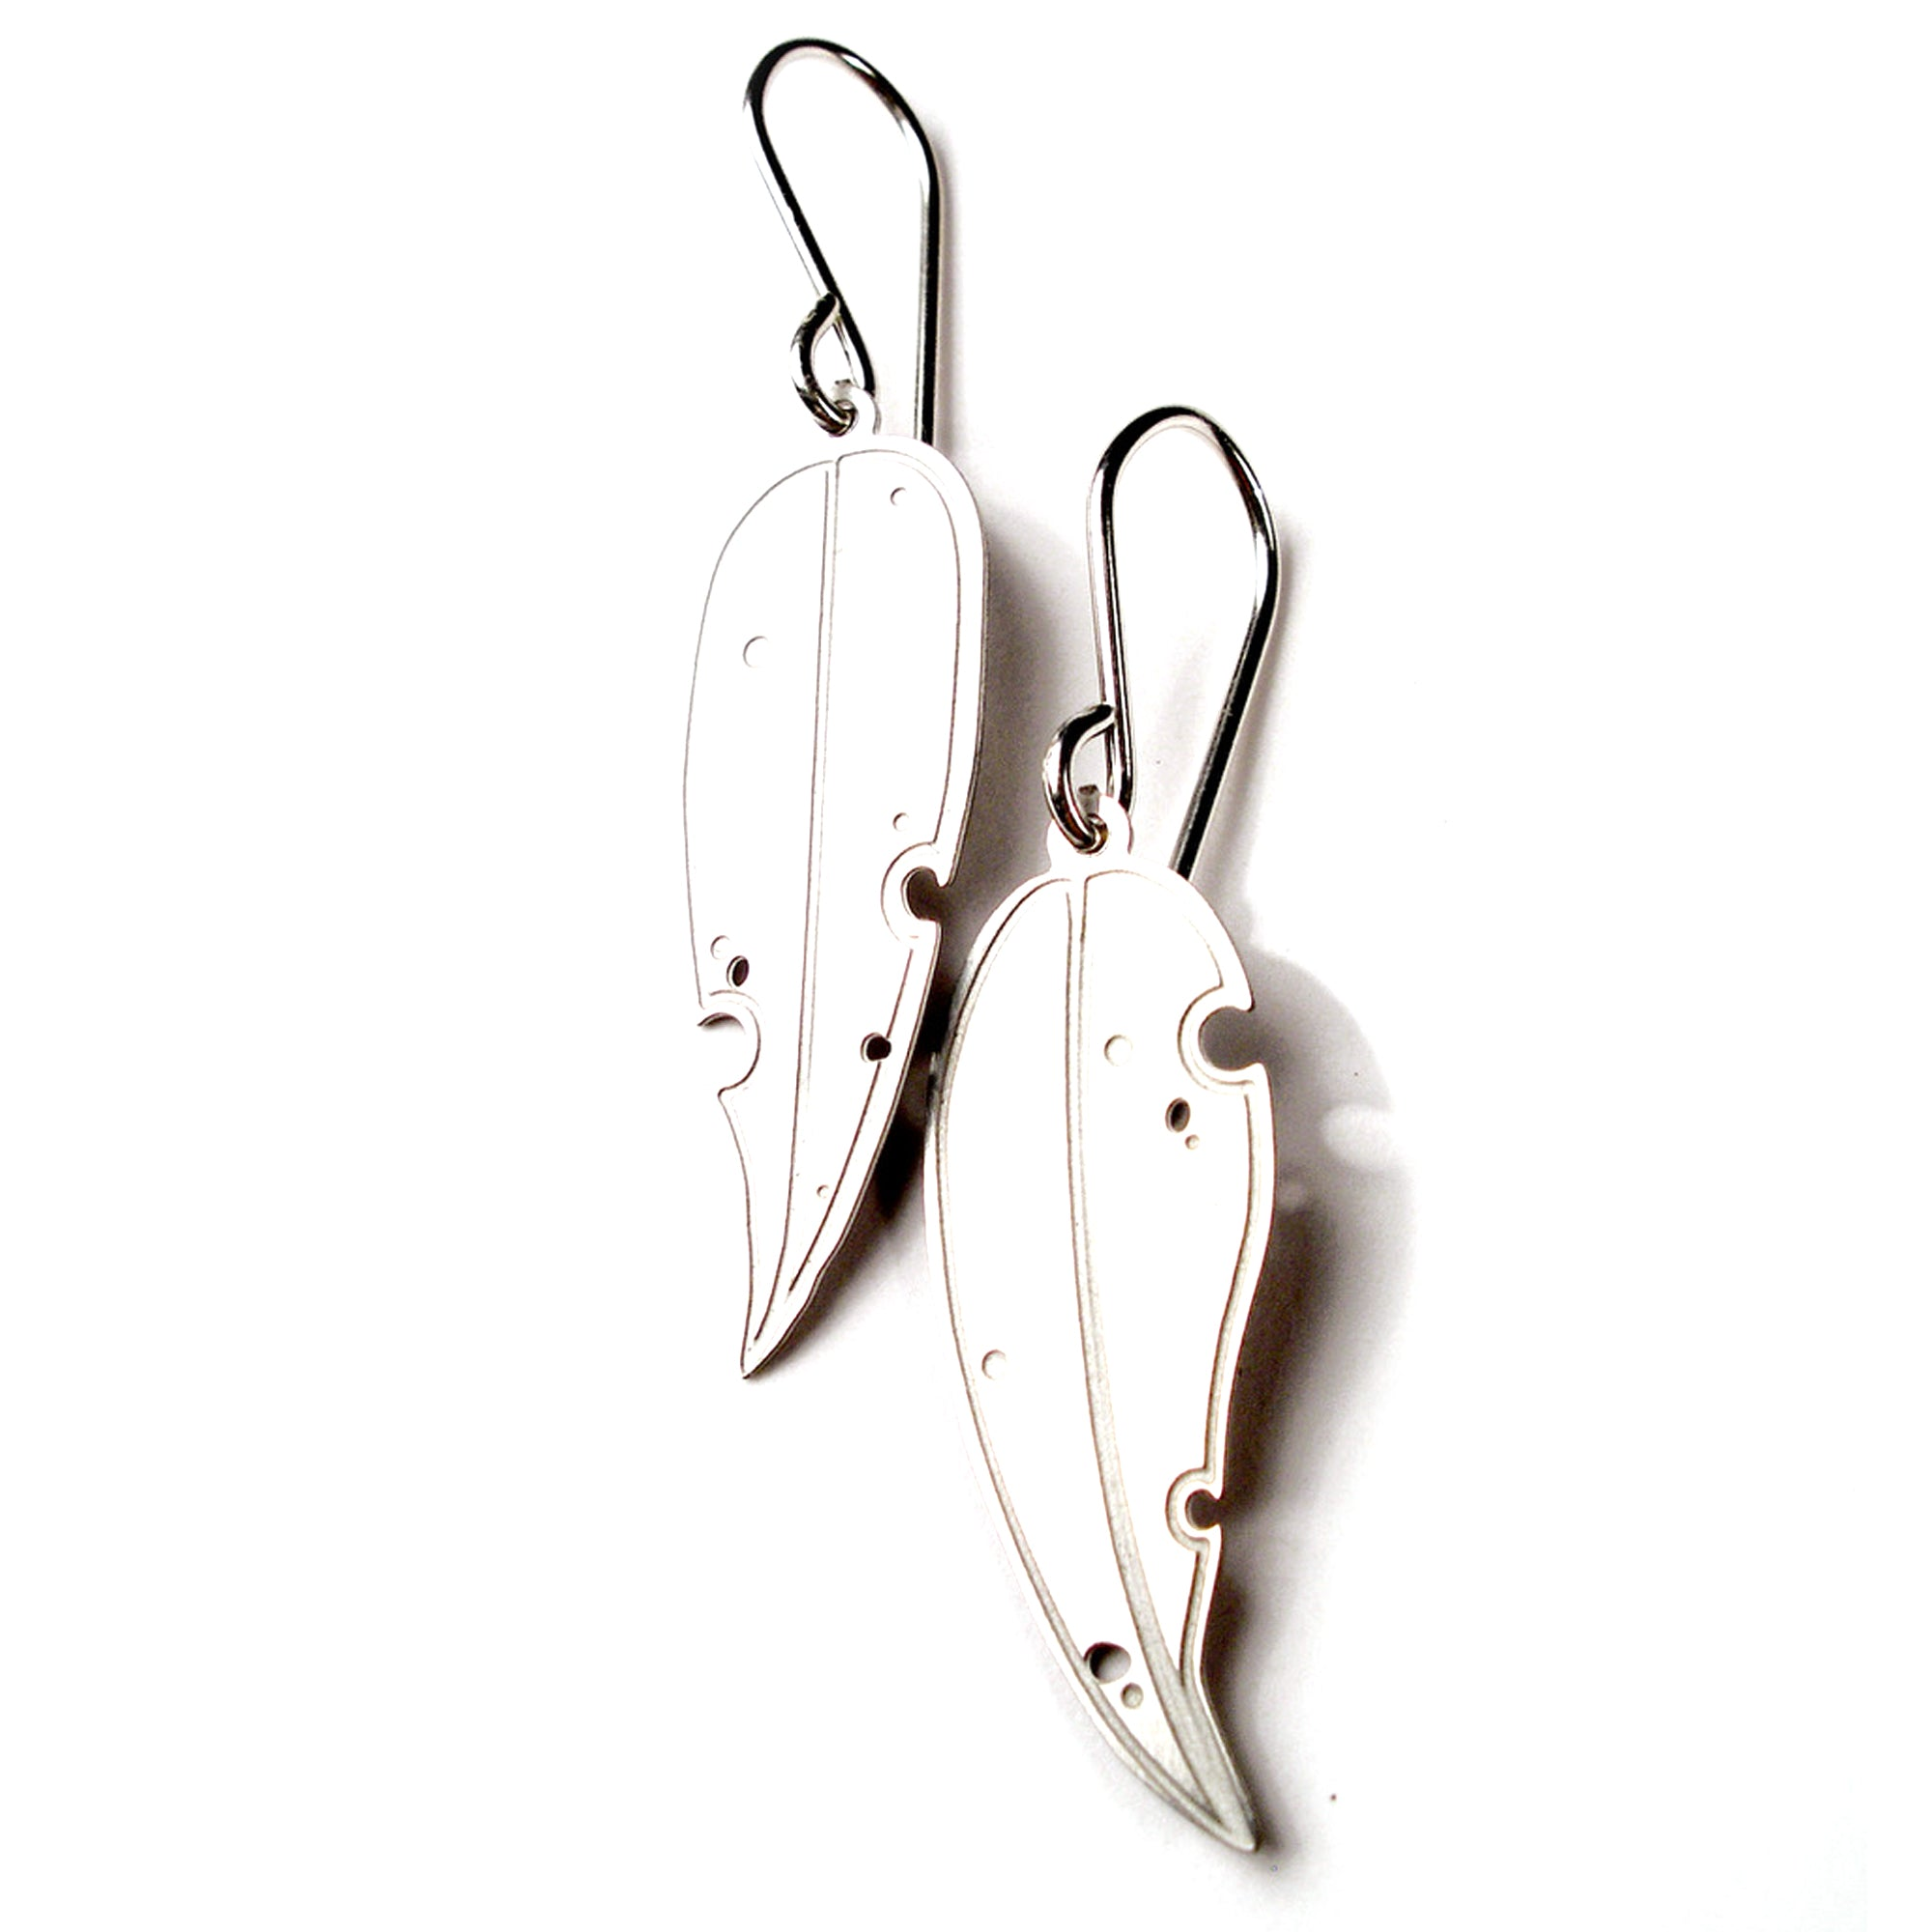 Jessica Jubb - Etched 'Eucalyptus' Steel Earrings (jju029)